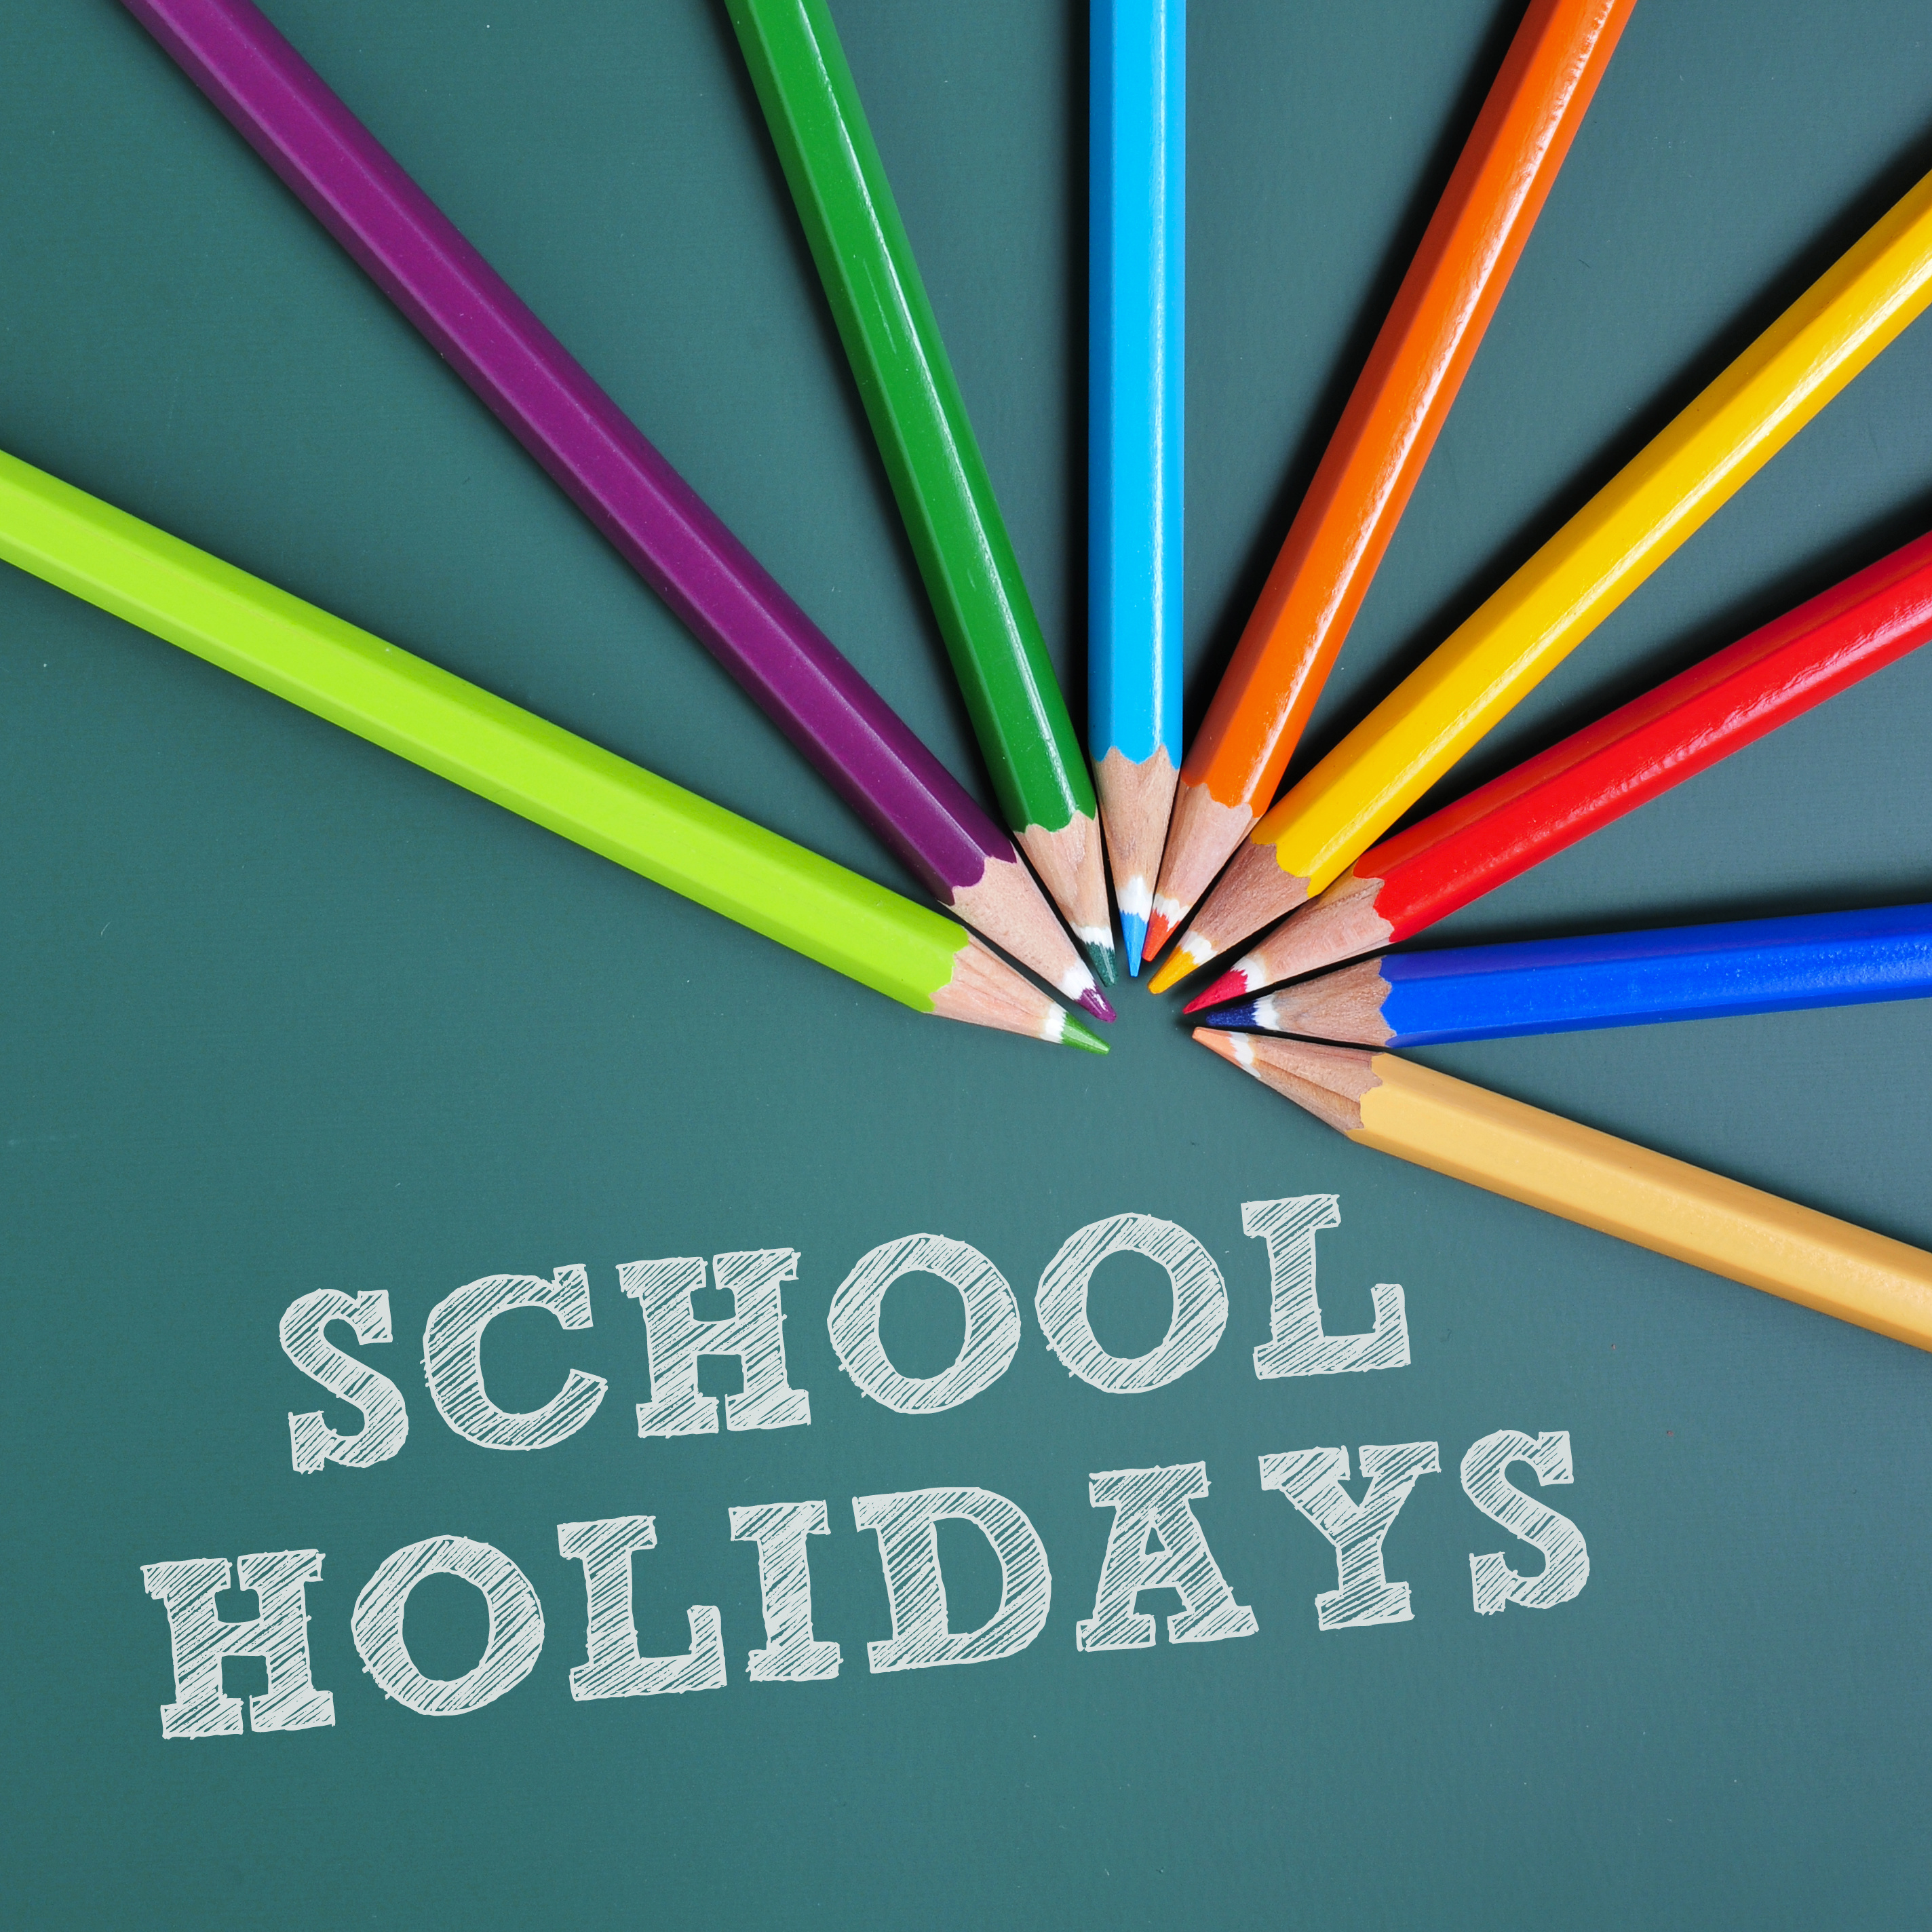 School holidays sign with circle of coloured pencils